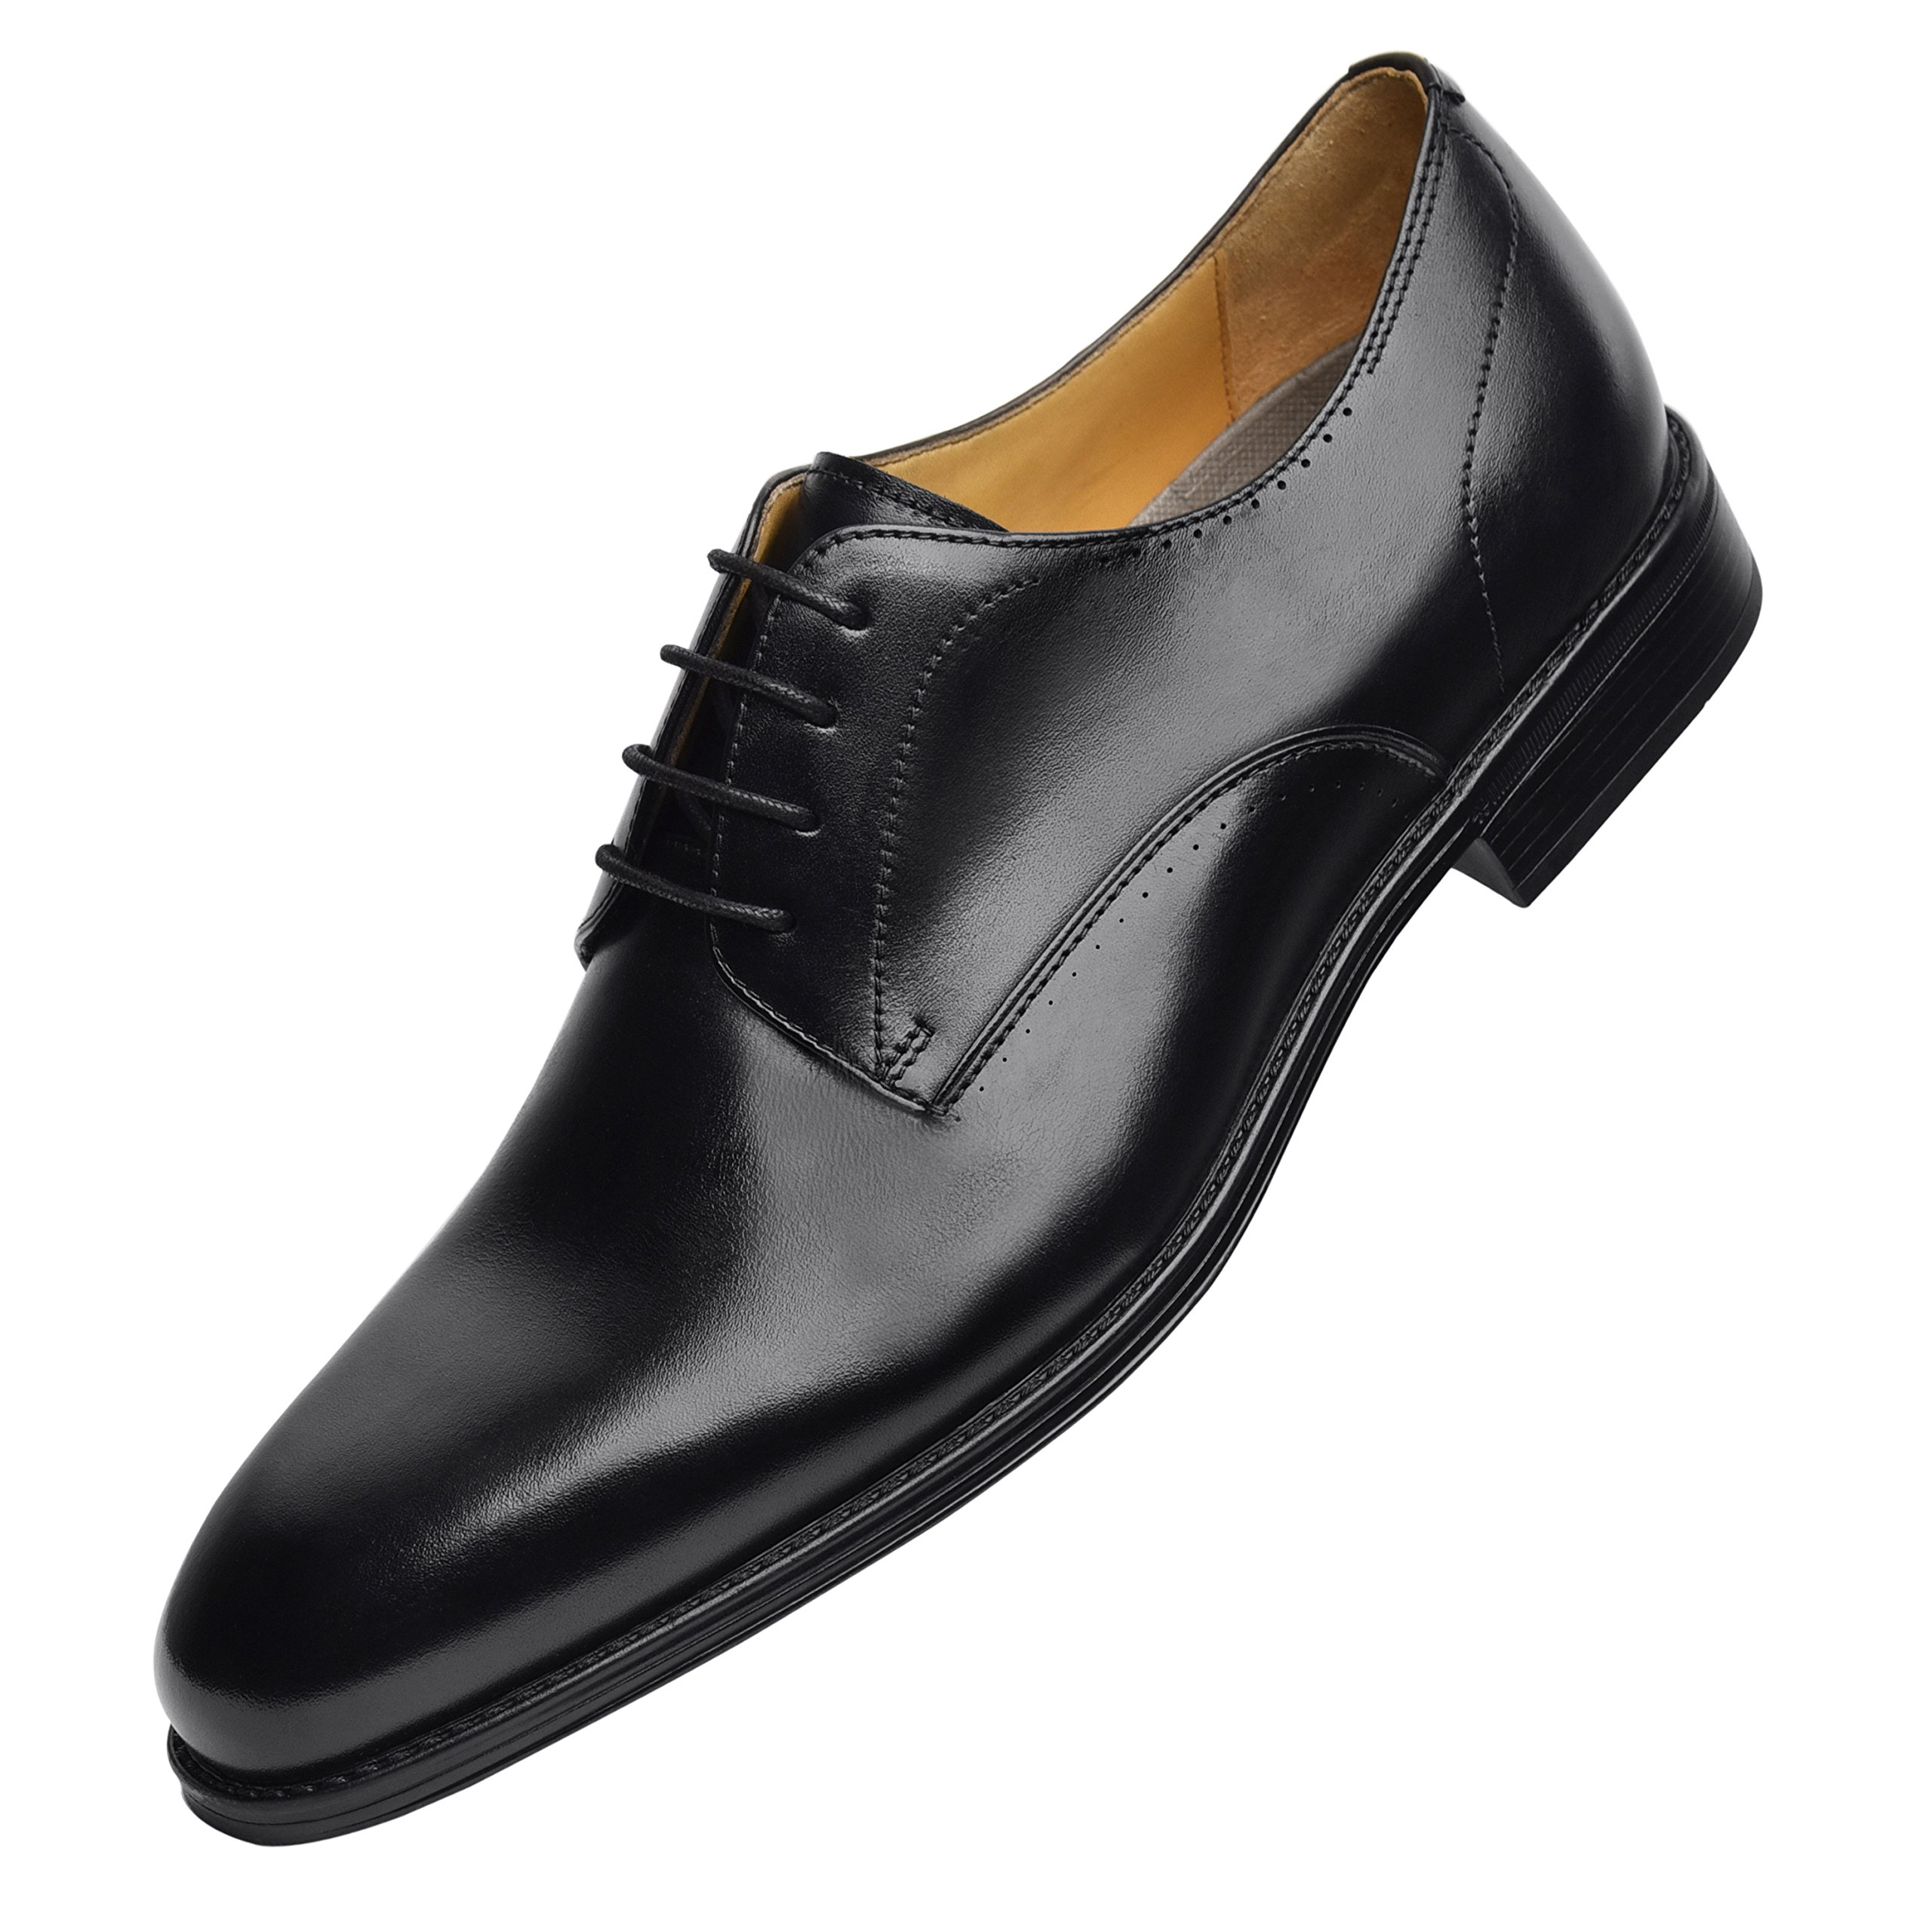 COMOTEK Mens Dress Shoes with Comfort Removable Soft Leather Insoles, 2018 Classic Oxford Design, Handcrafted by Full Grain Leather-Andros, Black, US10.5-1